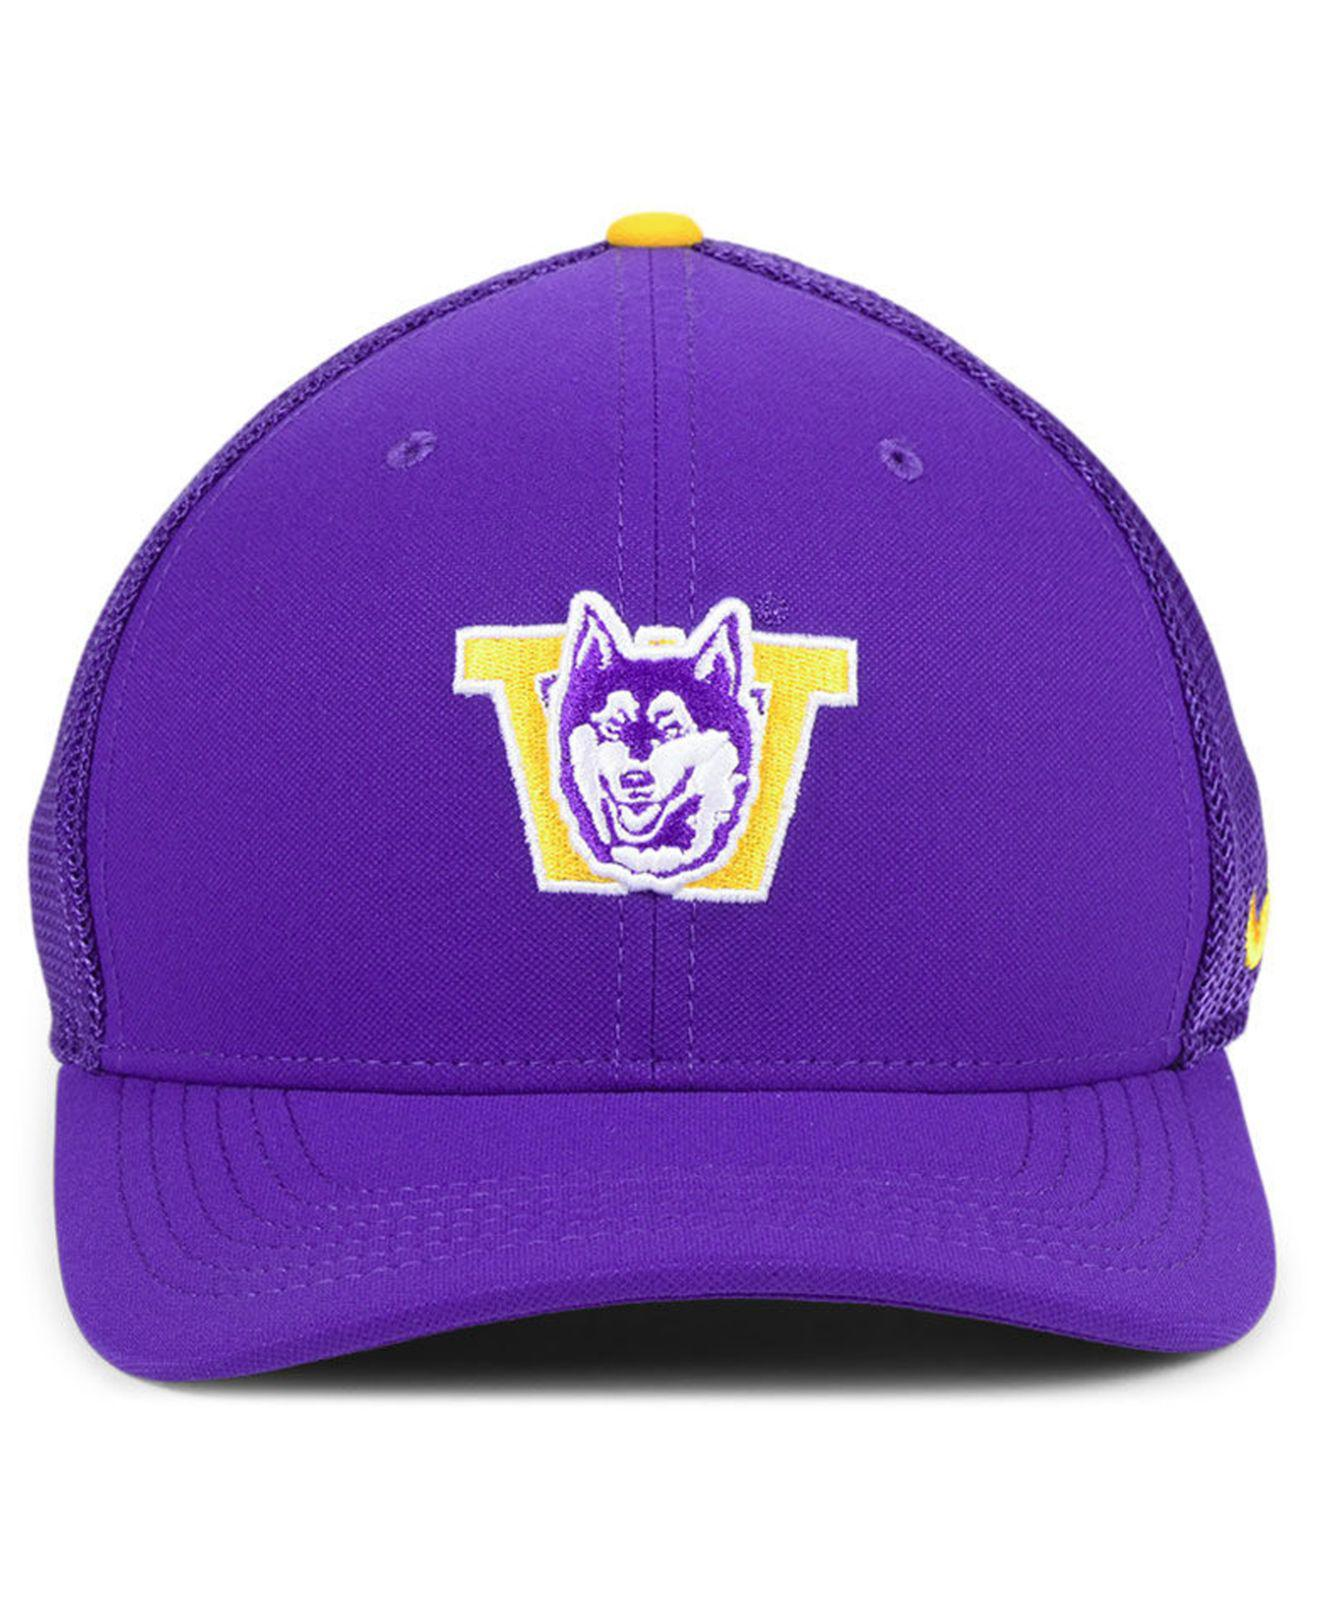 5c9b2cd0b0eb5d closeout lyst nike washington huskies col aro swooshflex cap in purple for  men a0899 1abad